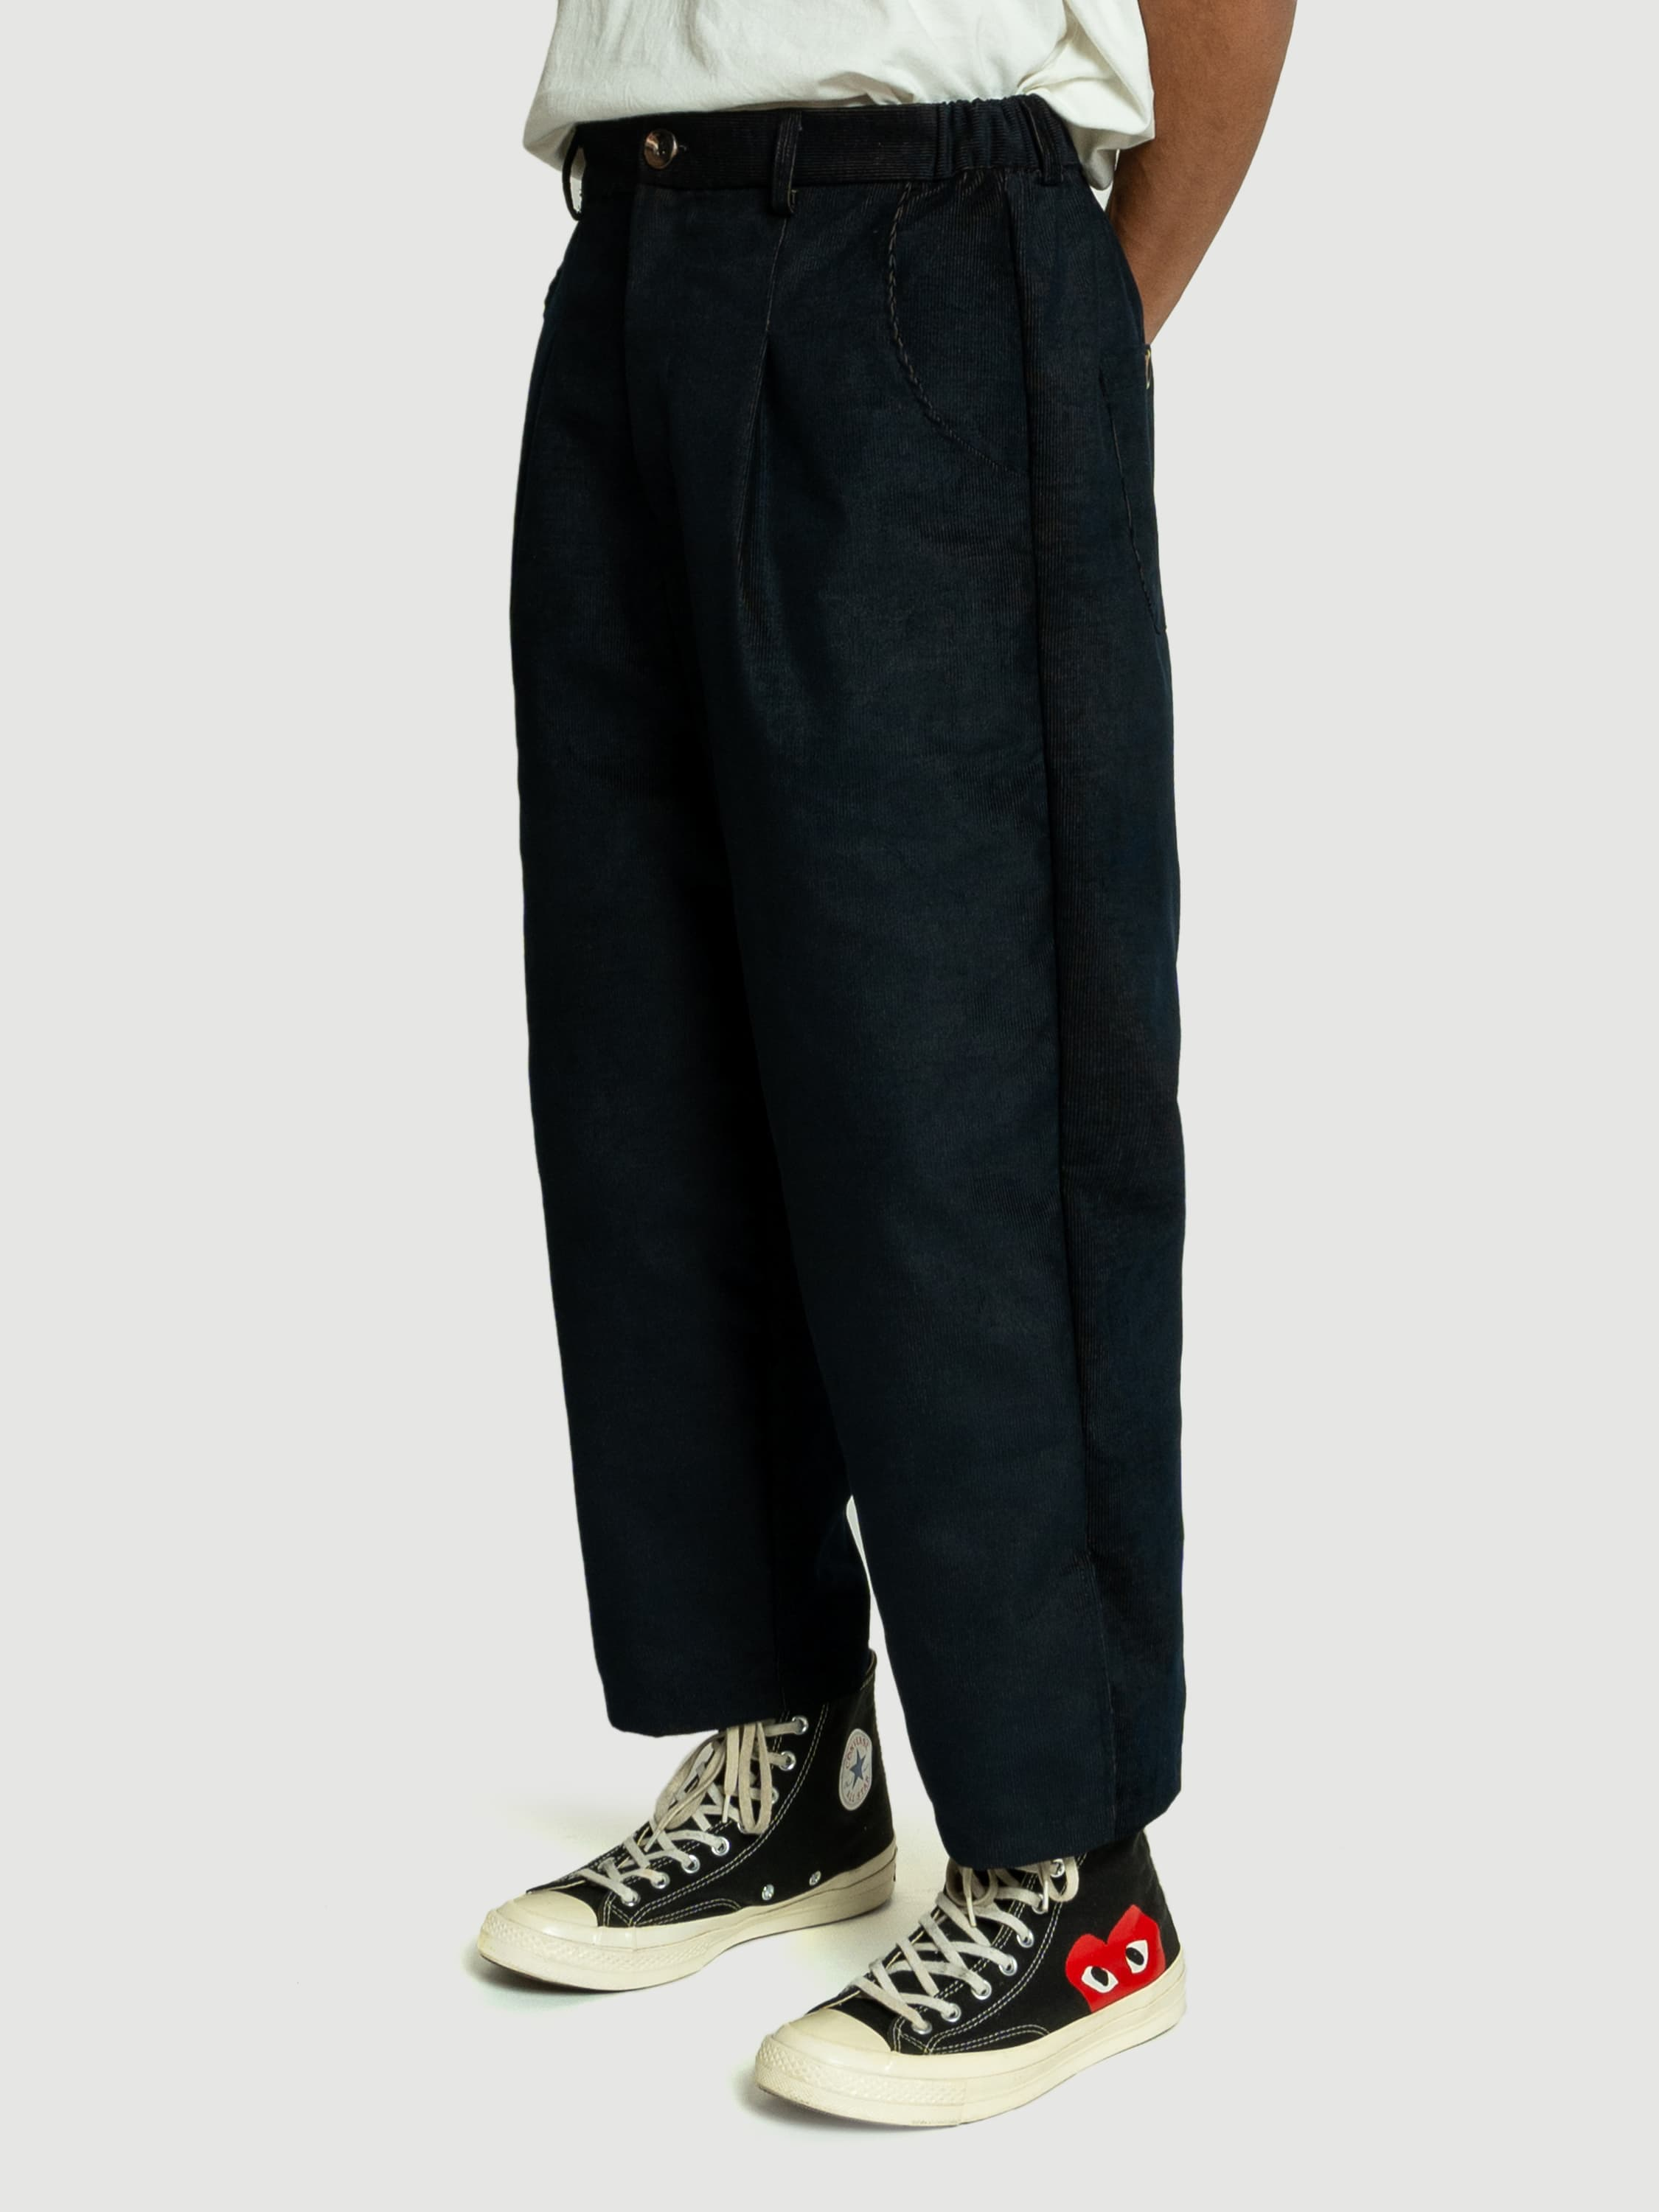 Baggy Black Corduroy Pants